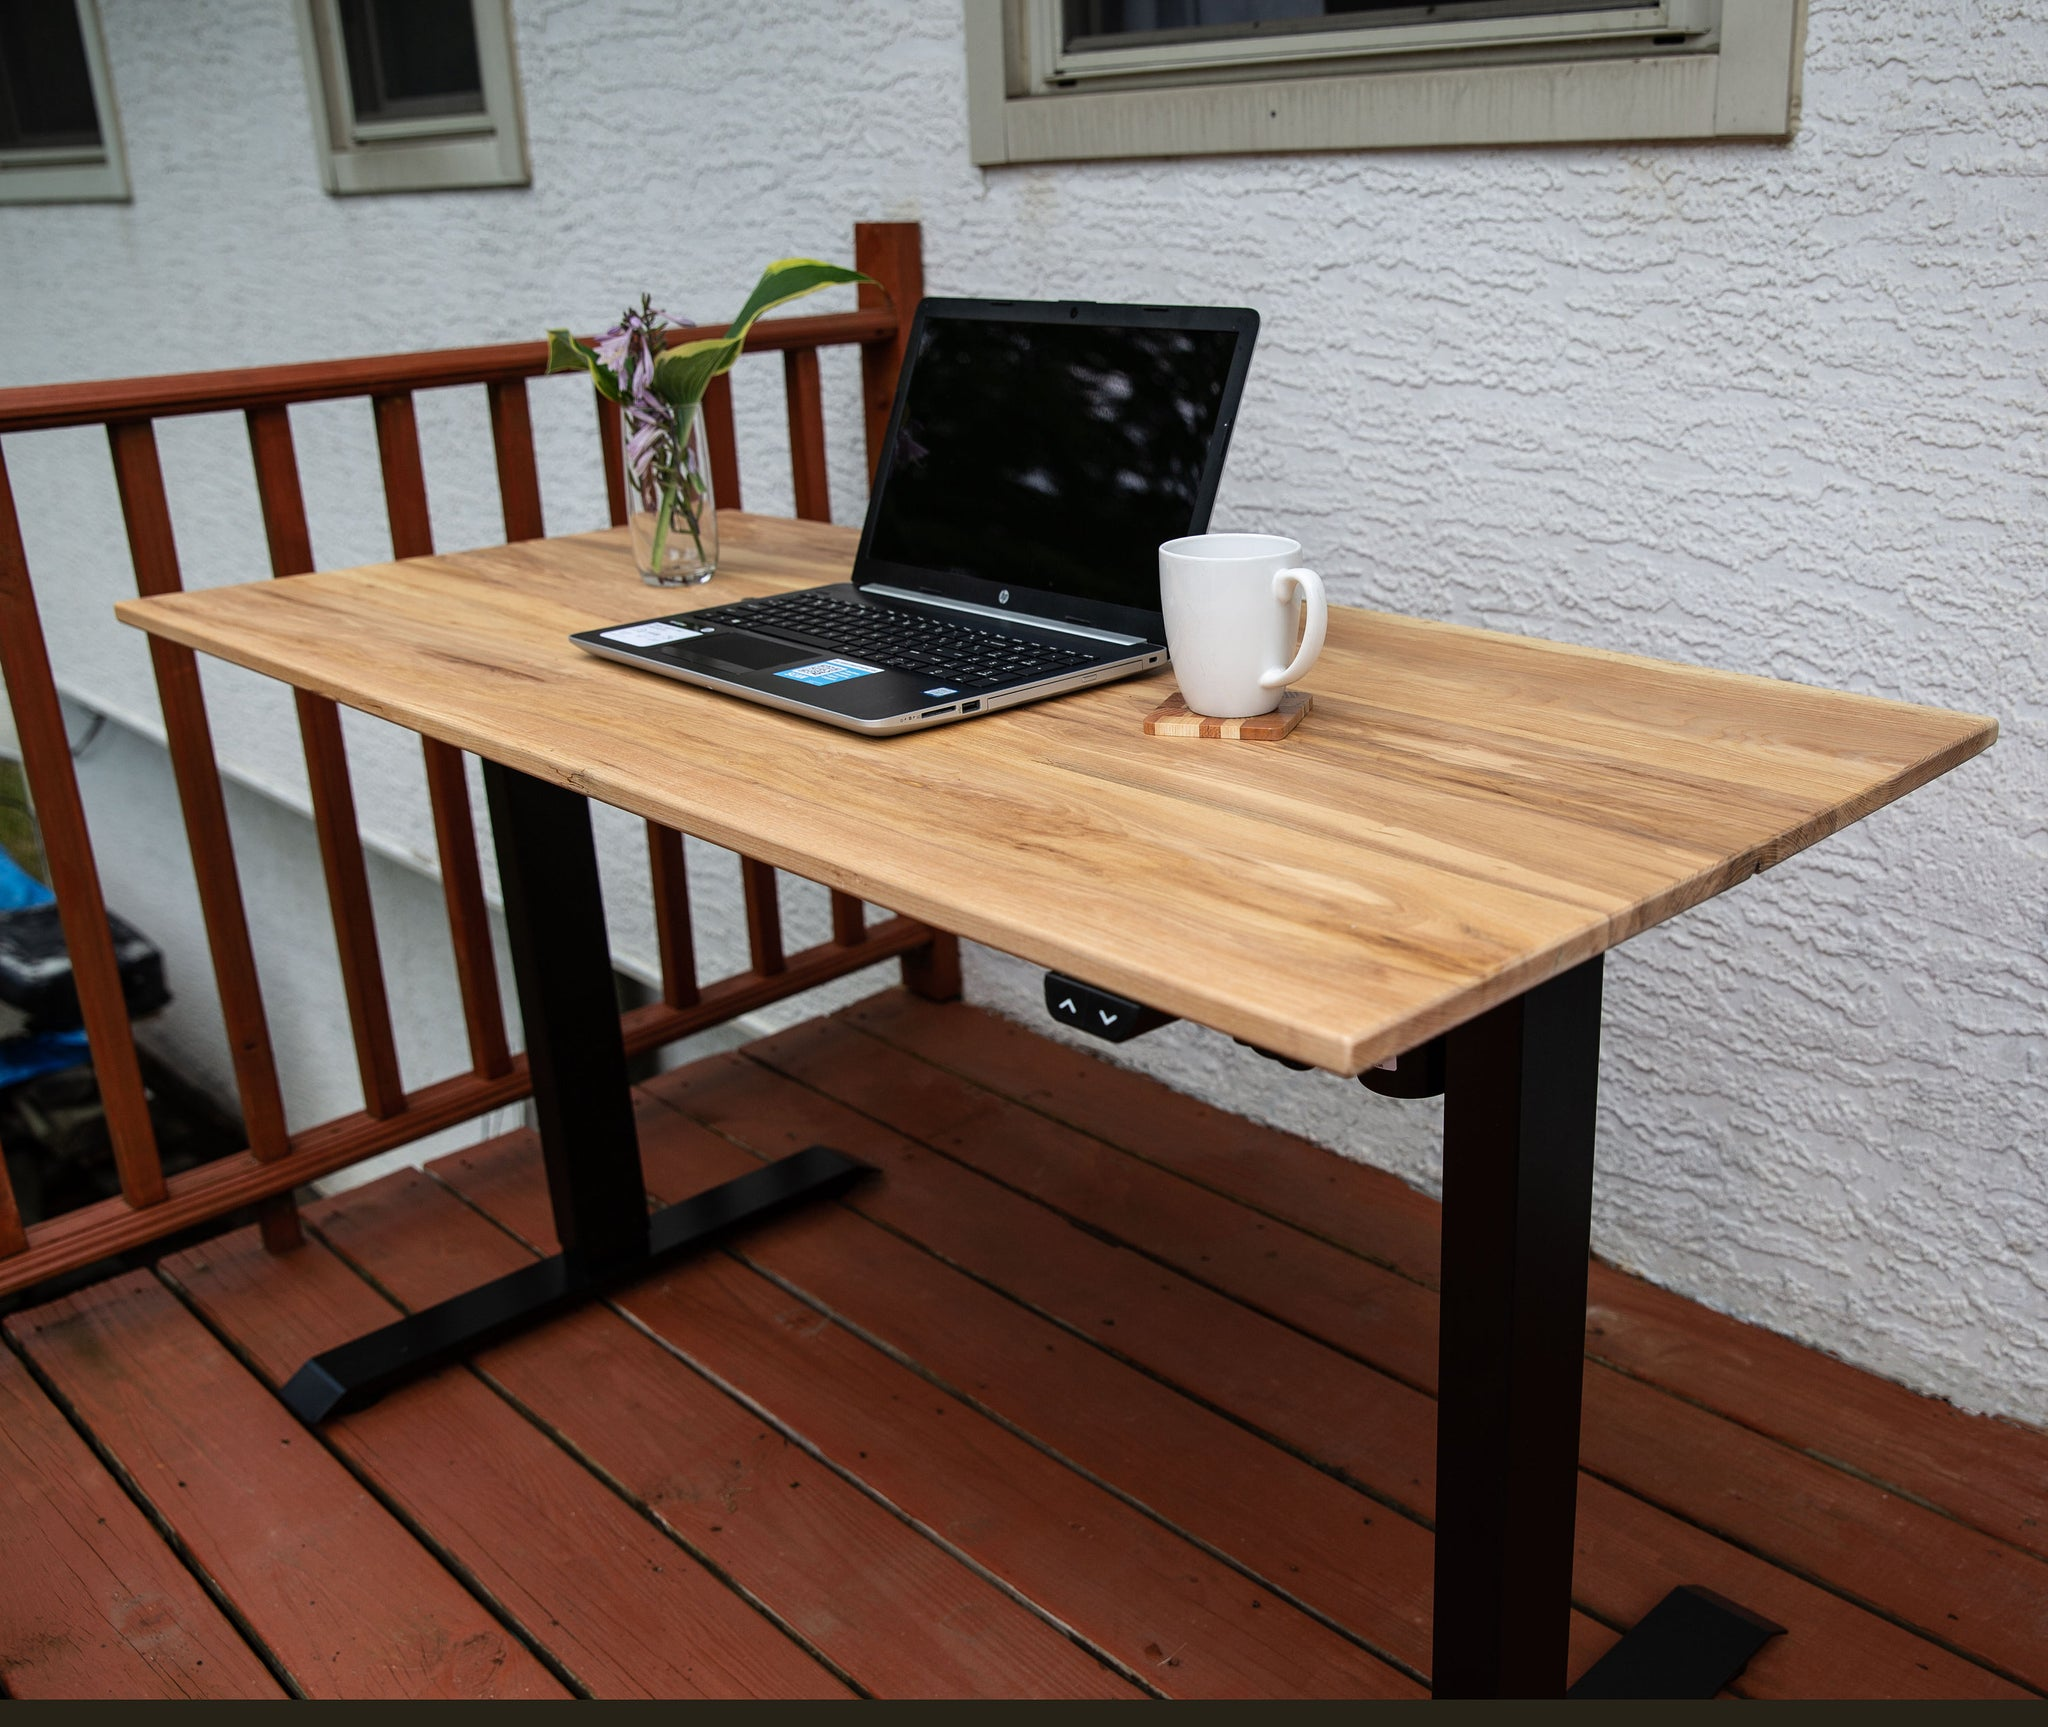 Electronic desk with ash wood top. Shown with a laptop, coaster and mug.